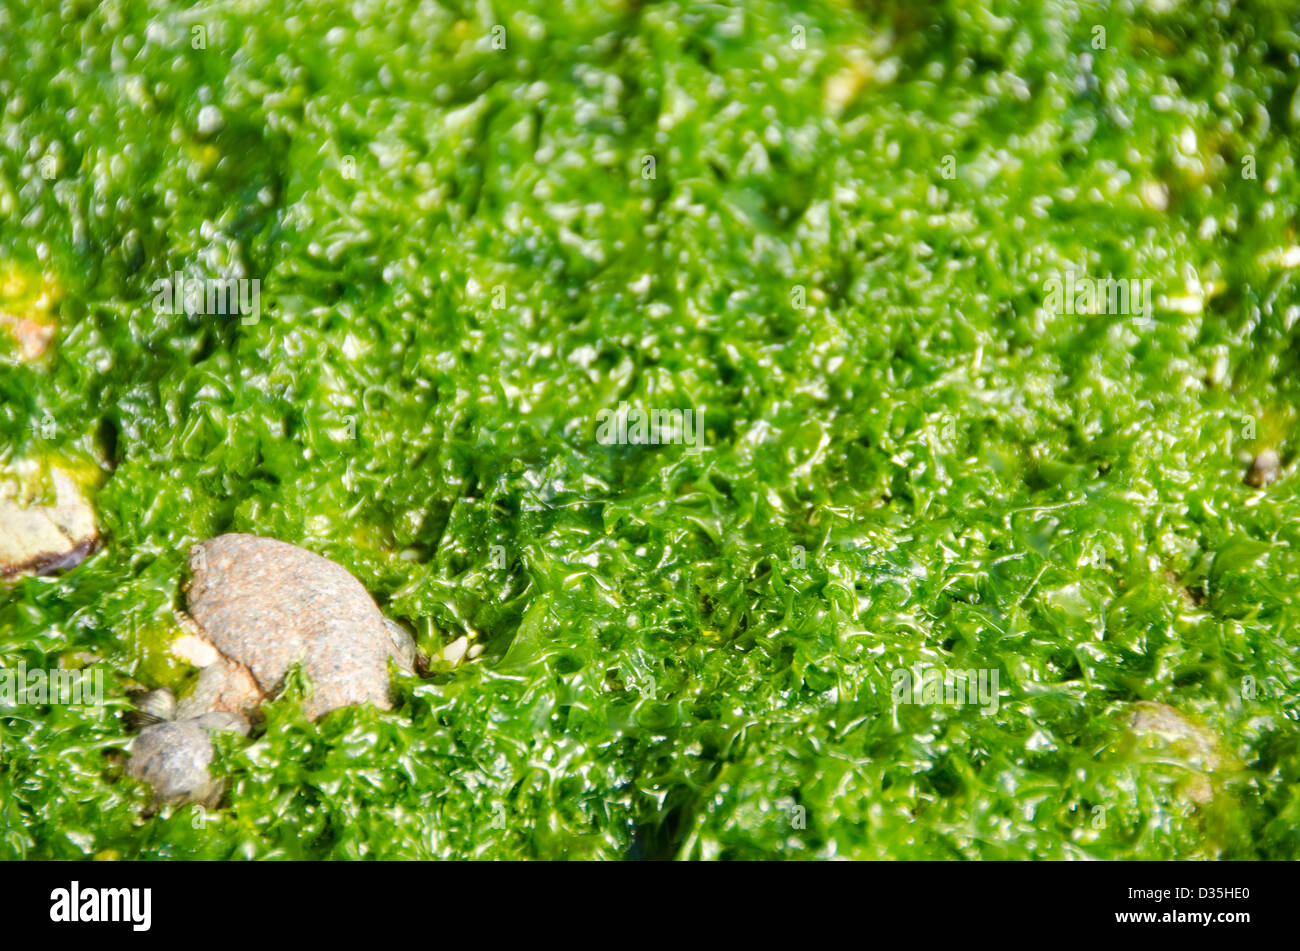 Green algae background on the rocky surface of a tidal flat in Japan - Stock Image